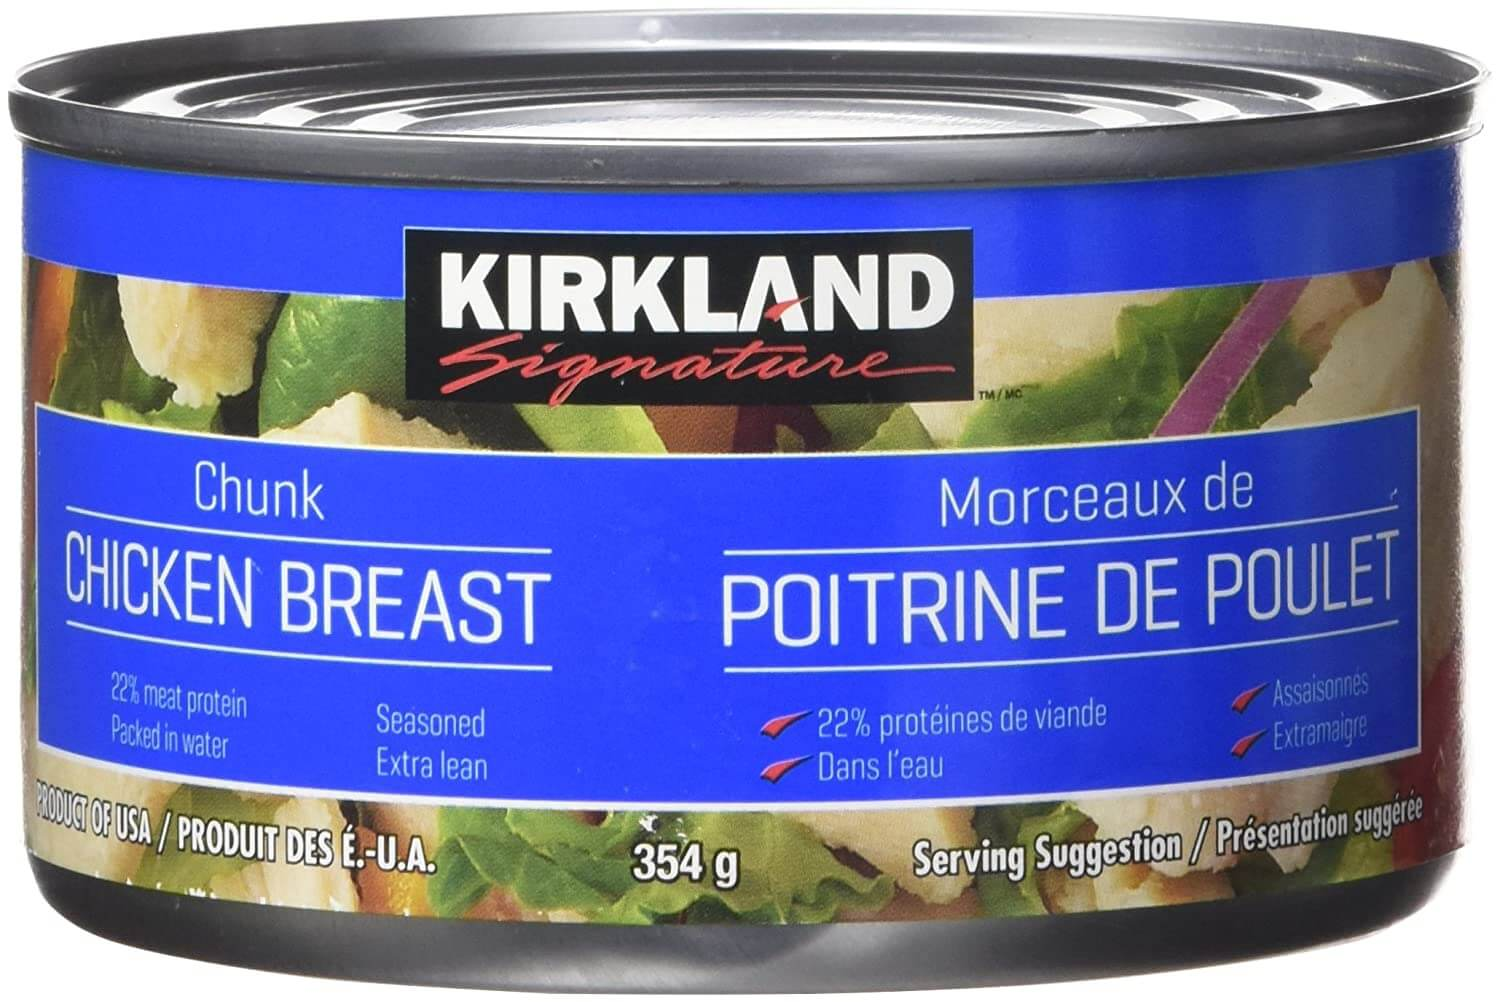 Kirkland Signature Chicken Breast, Packed in Water